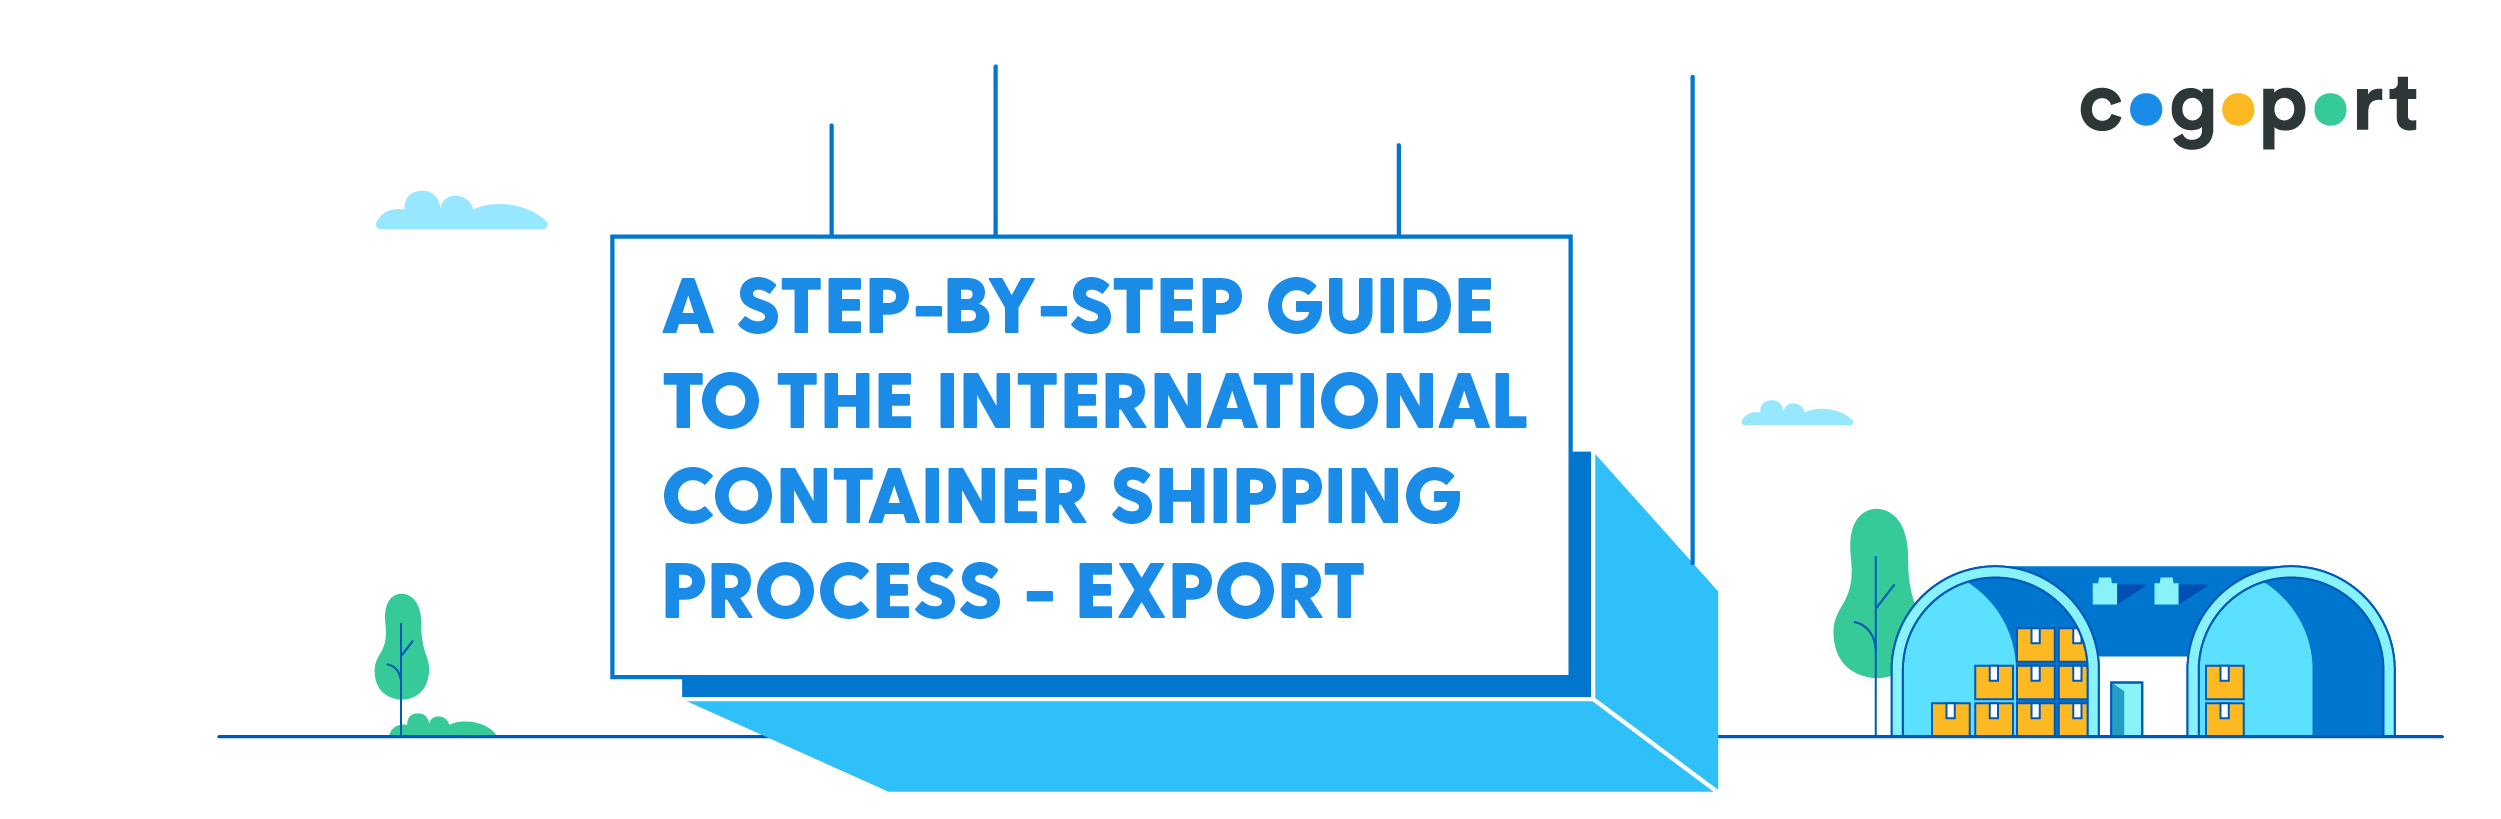 A Step-By-Step Guide To The International Shipping Process And Export Process